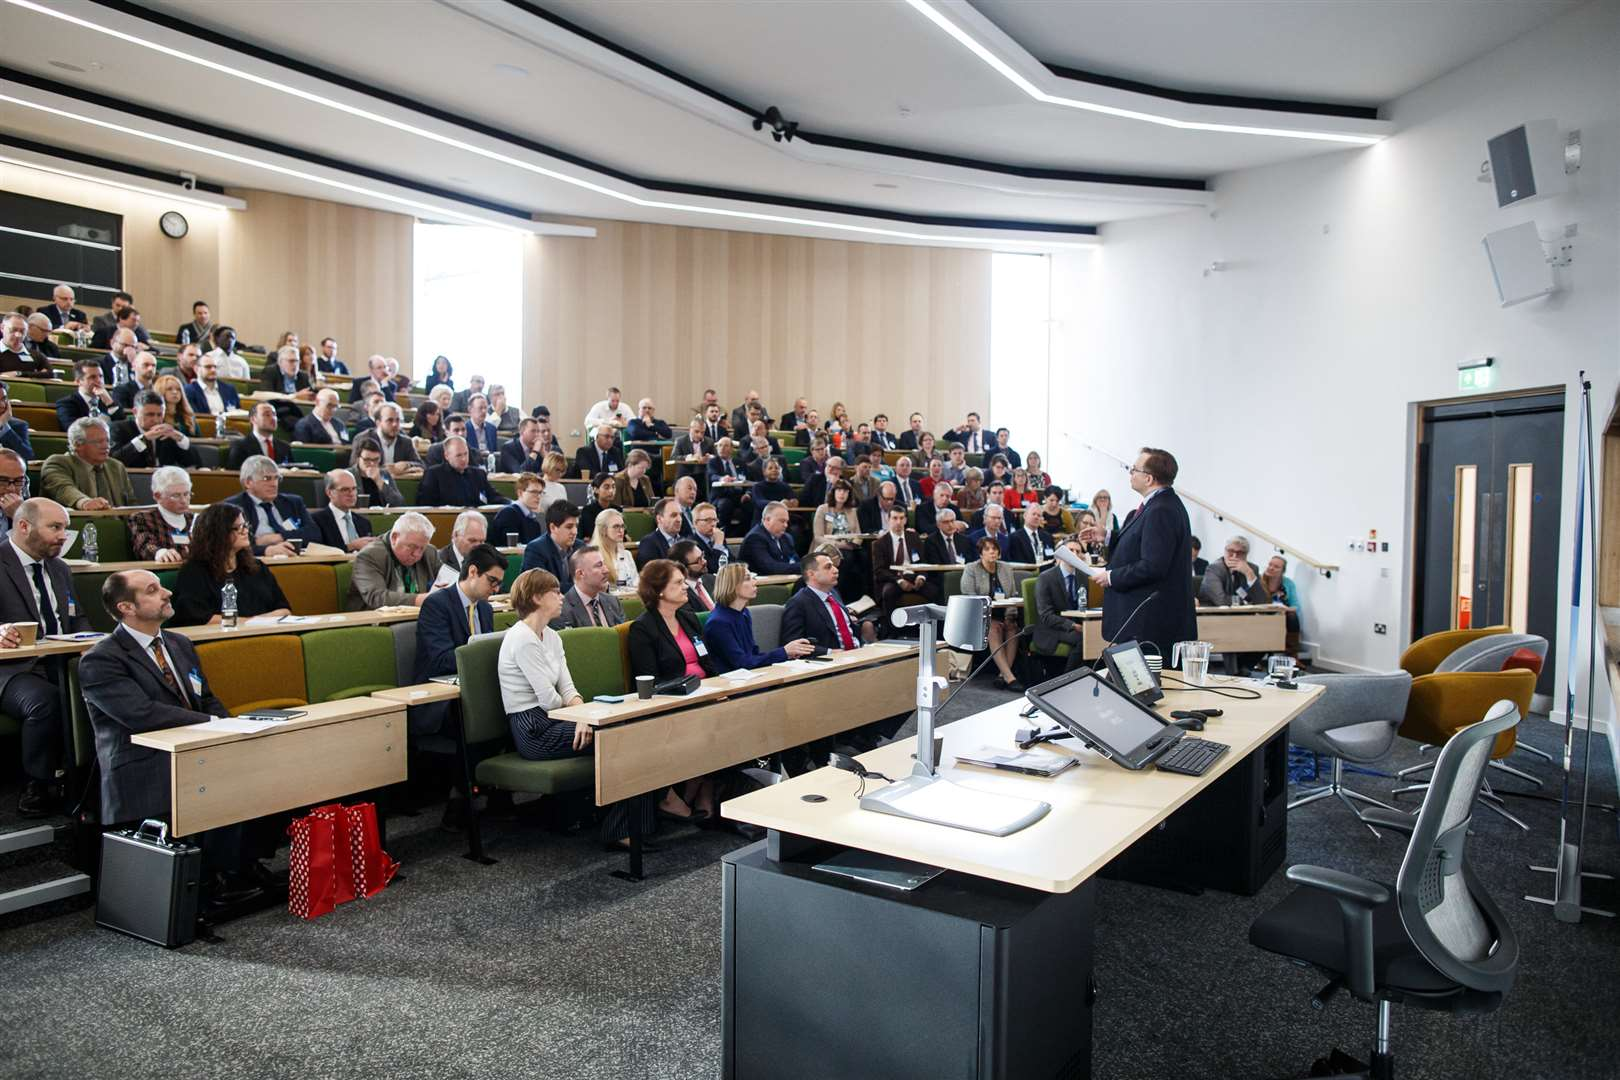 Kent Business Summit was attended by more than 150 people